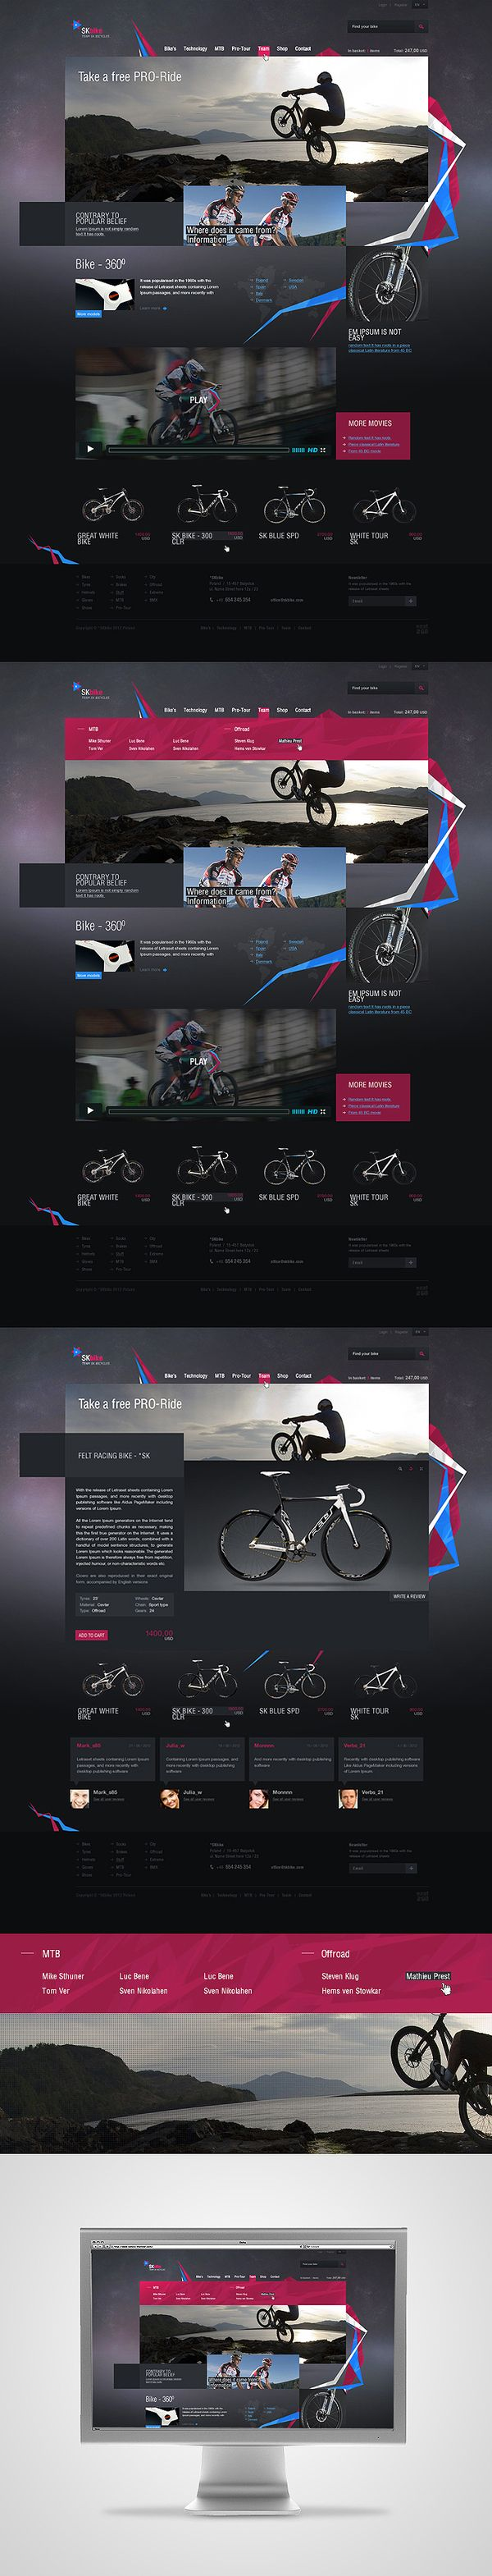 skbike webdesign, great contrast, shapes, photography and composition